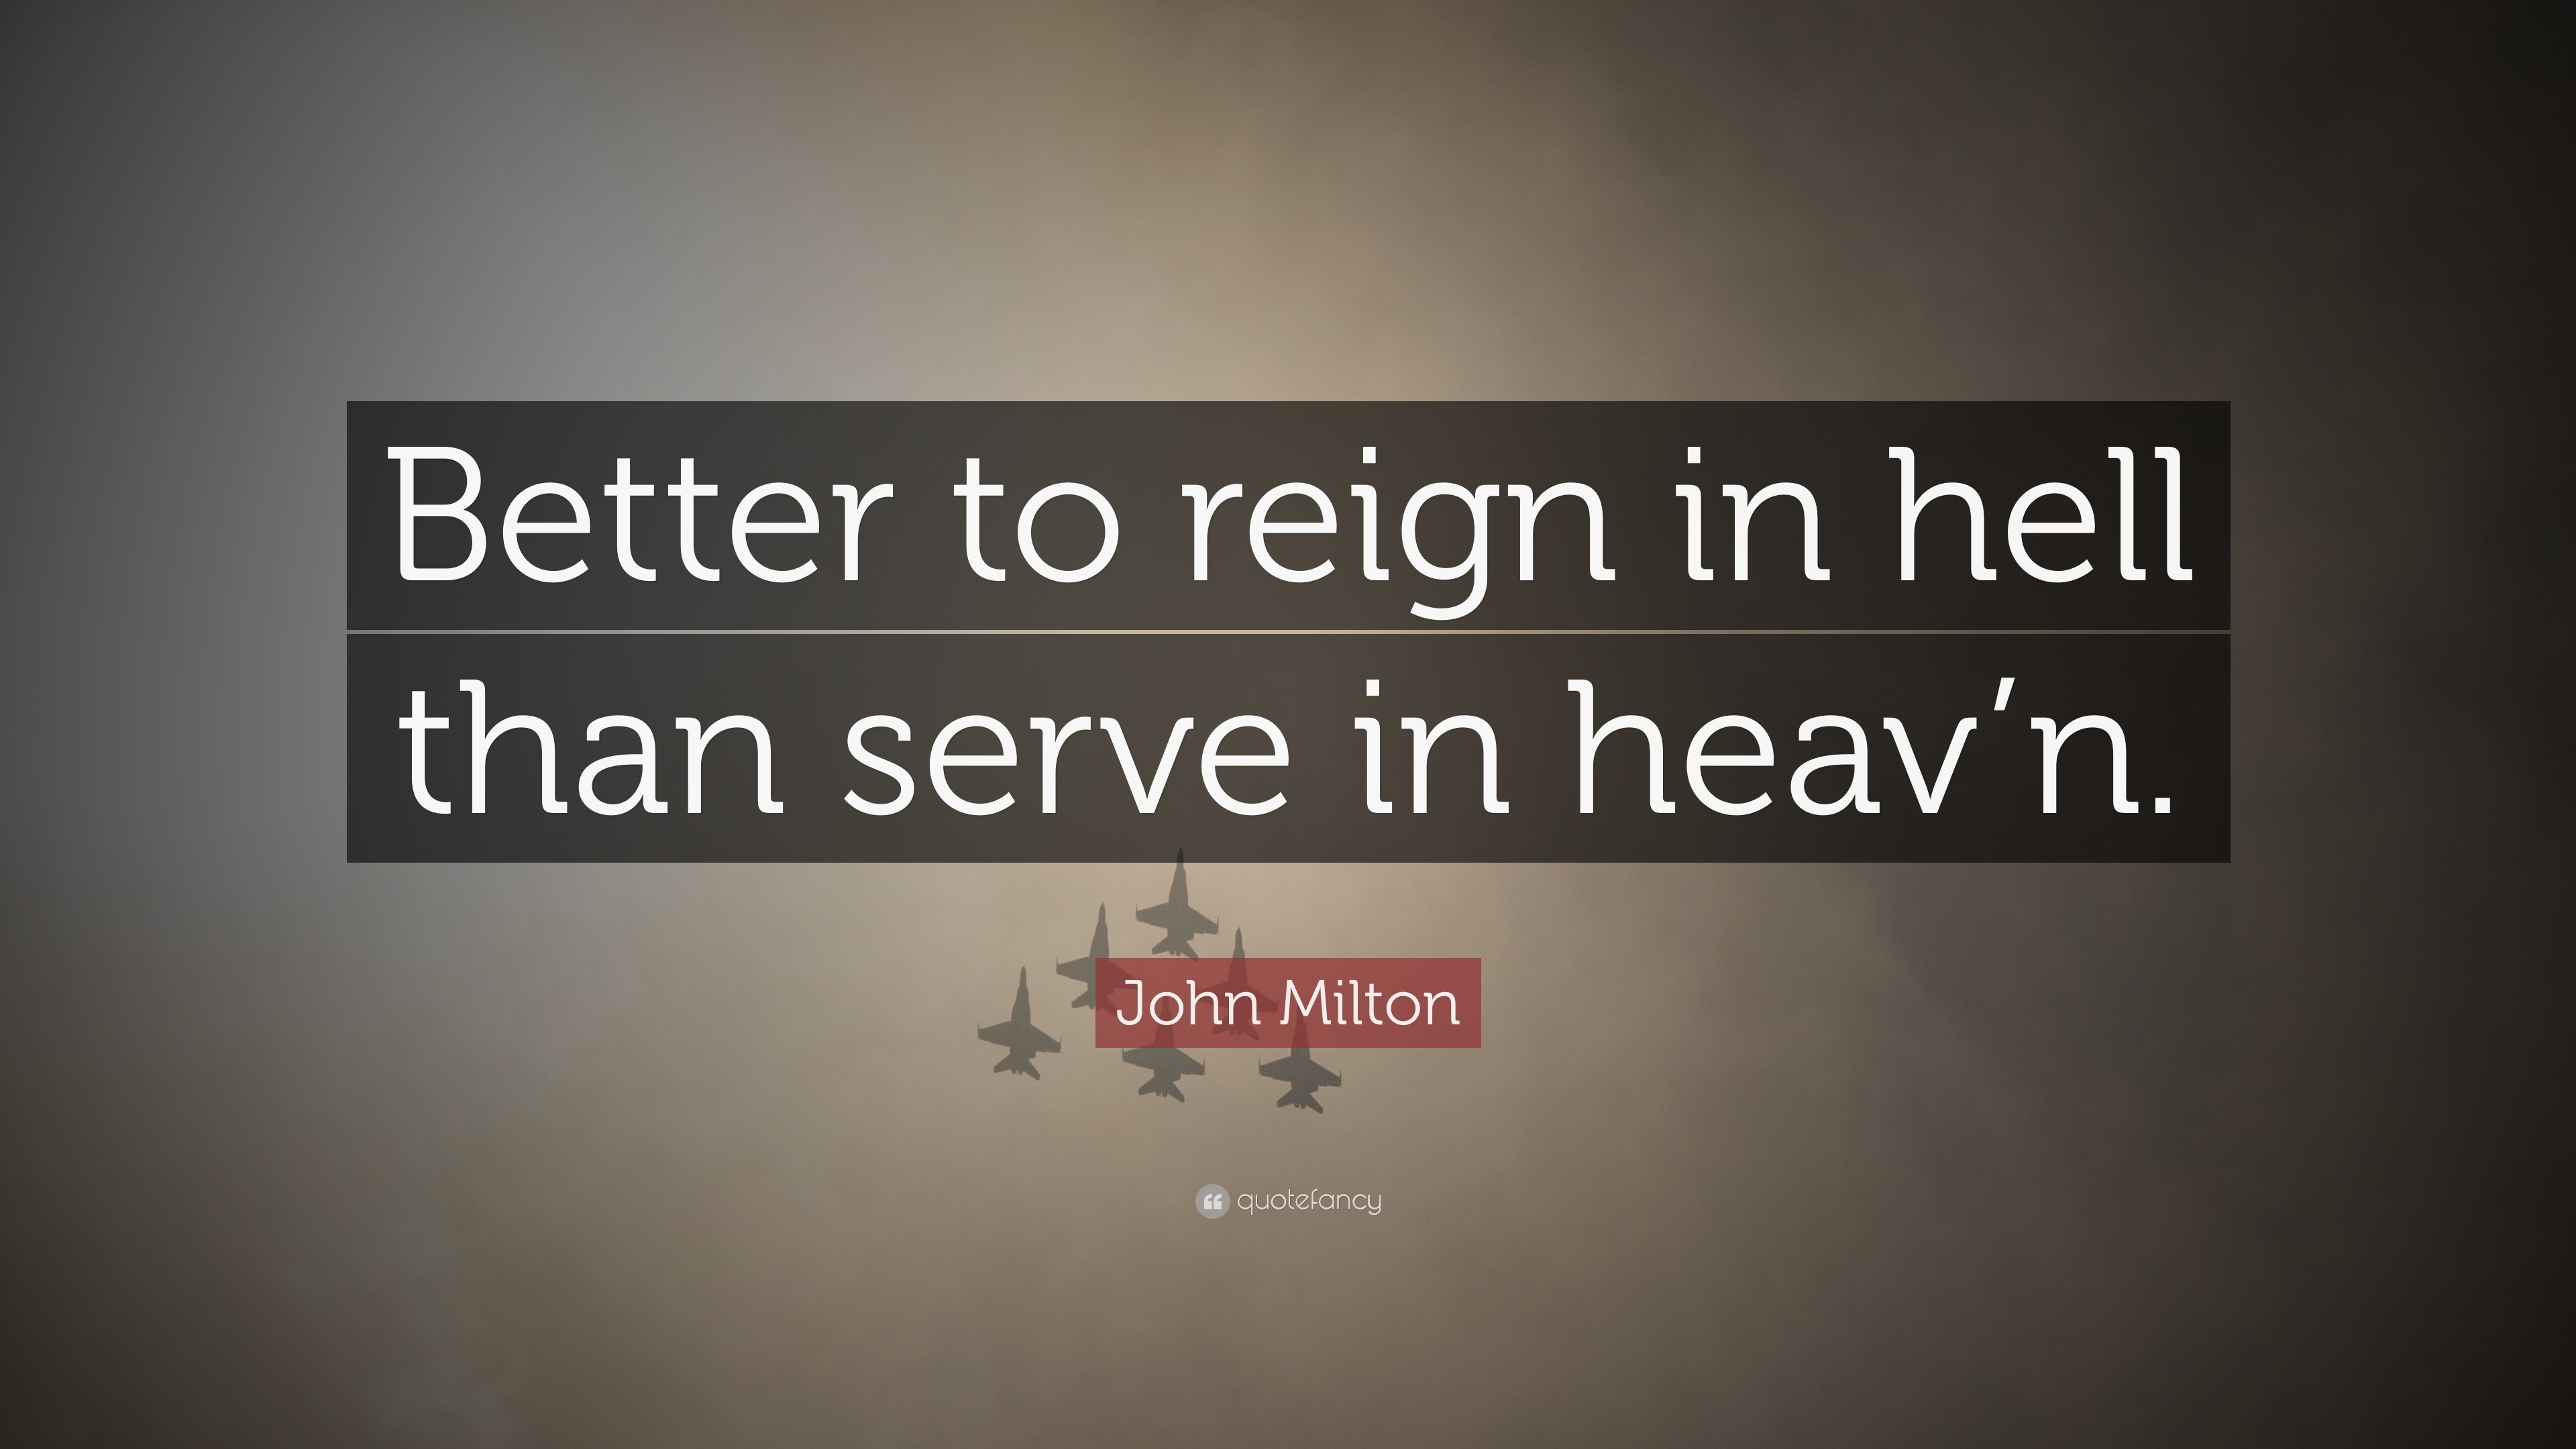 better to reign in hell than serve in heaven essay